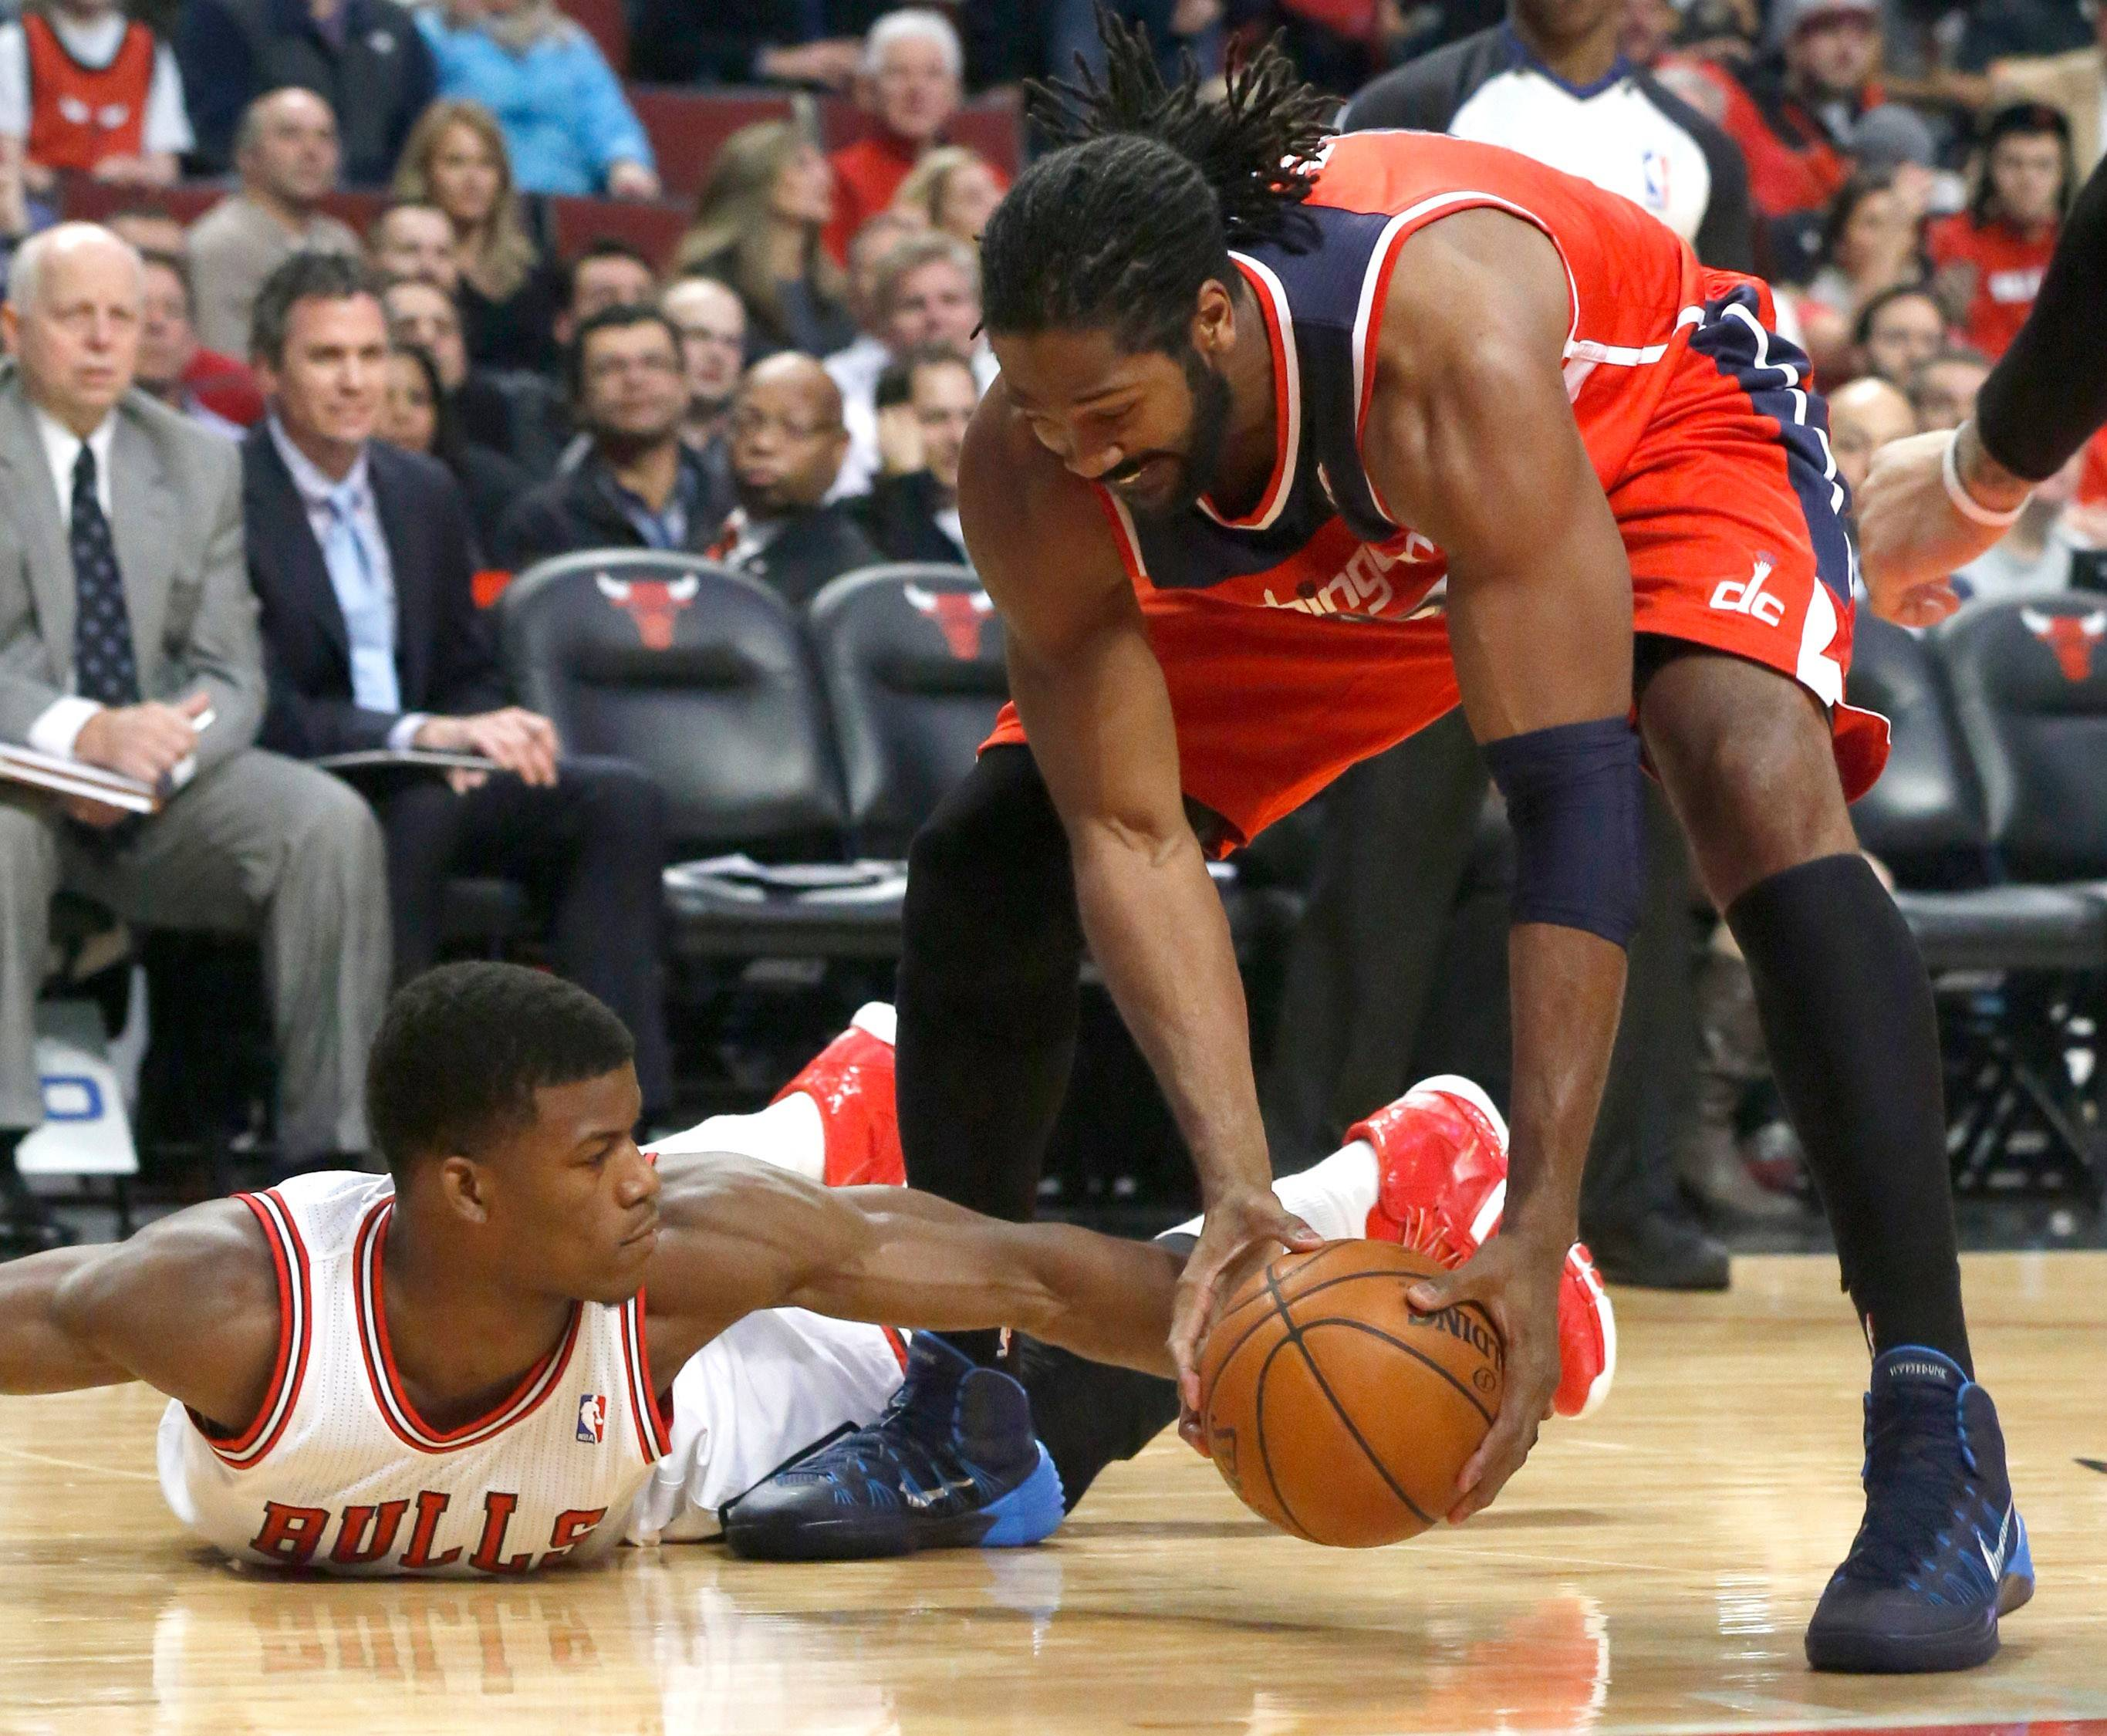 A defensive-minded Chicago Bulls team will have to slow down a Washington Wizards that averaged 100 points per game this season. The two temas open the first-round of the NBA playoffs on Sunday at the United Center.